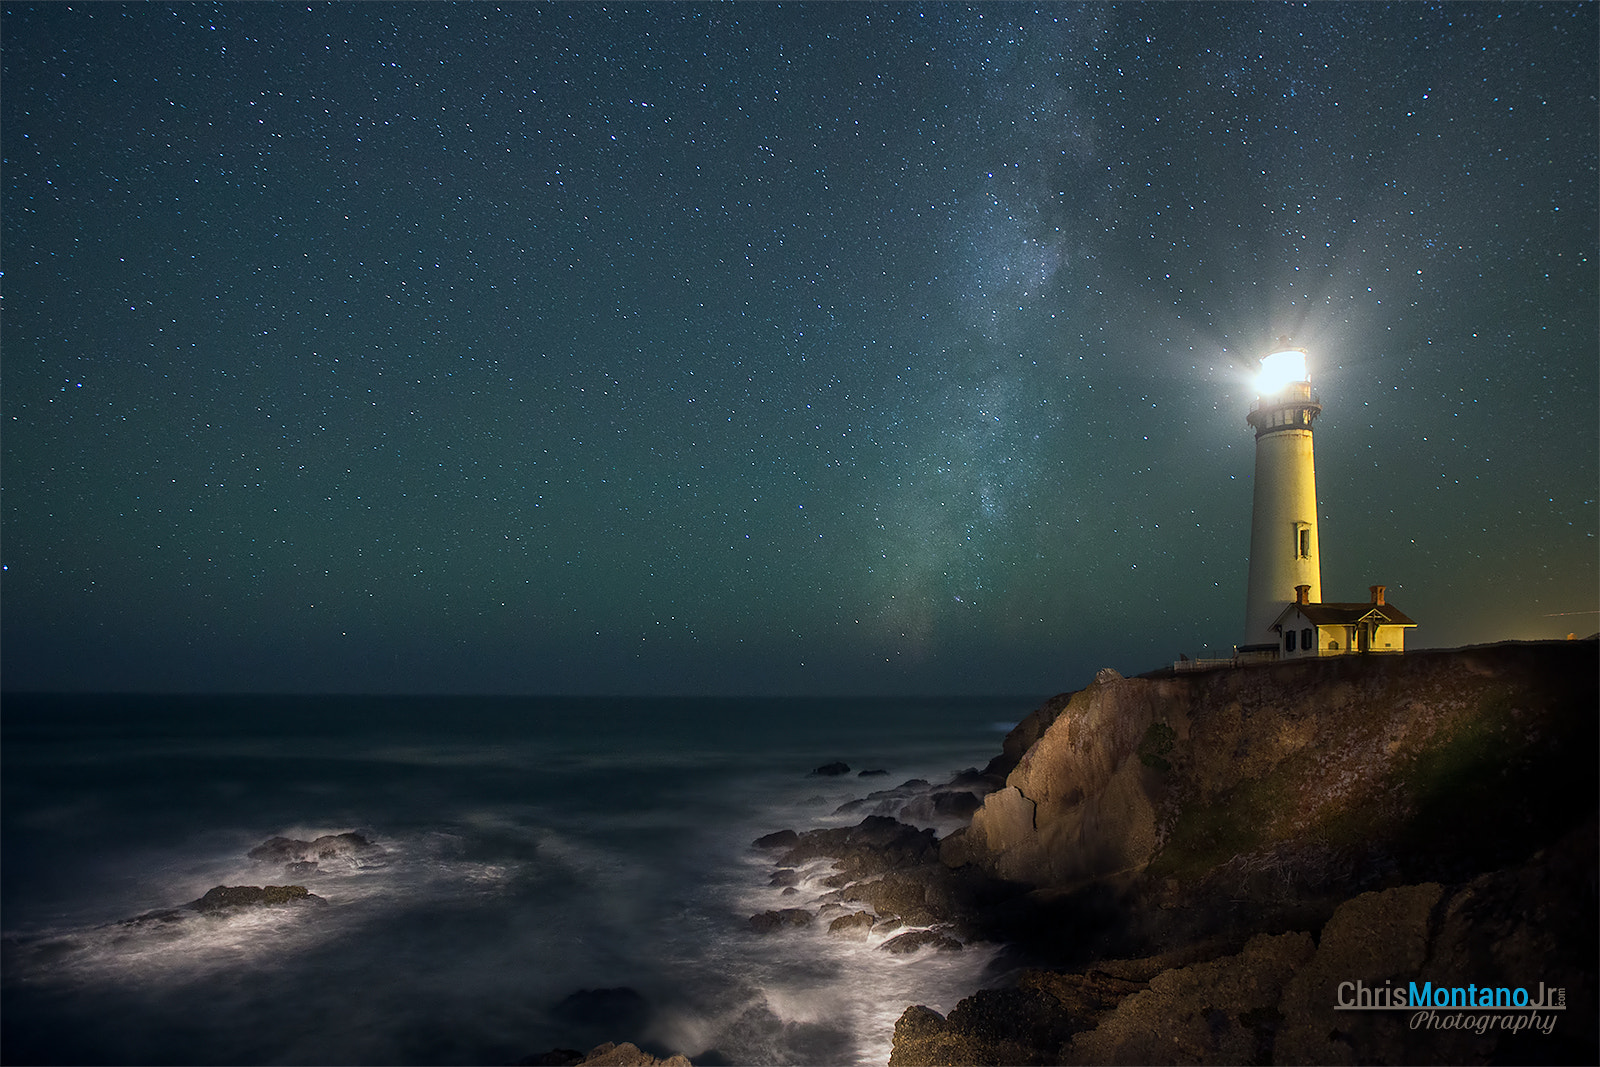 Photograph Pigeon Point Lighthouse & Milky Way by Chris Montano Jr. on 500px